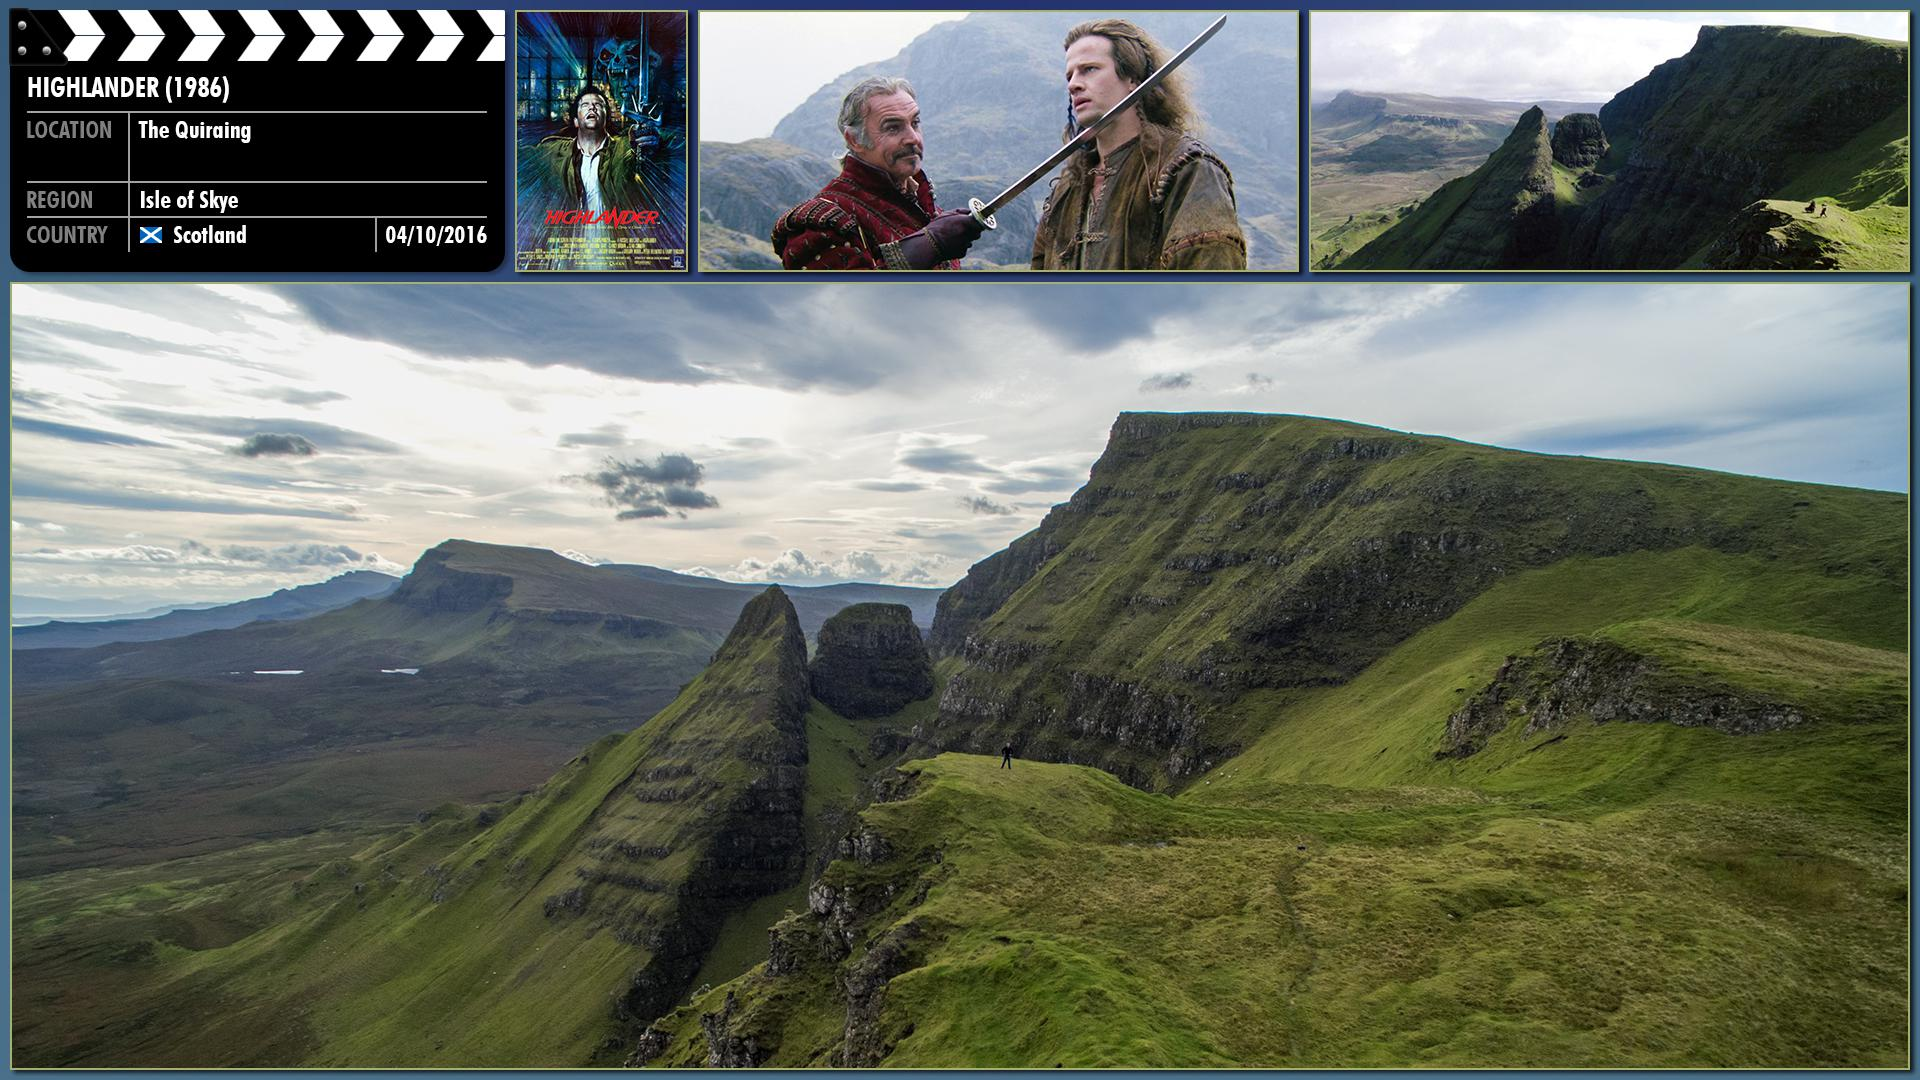 Filming location photo for Highlander (1986) 6 of 8